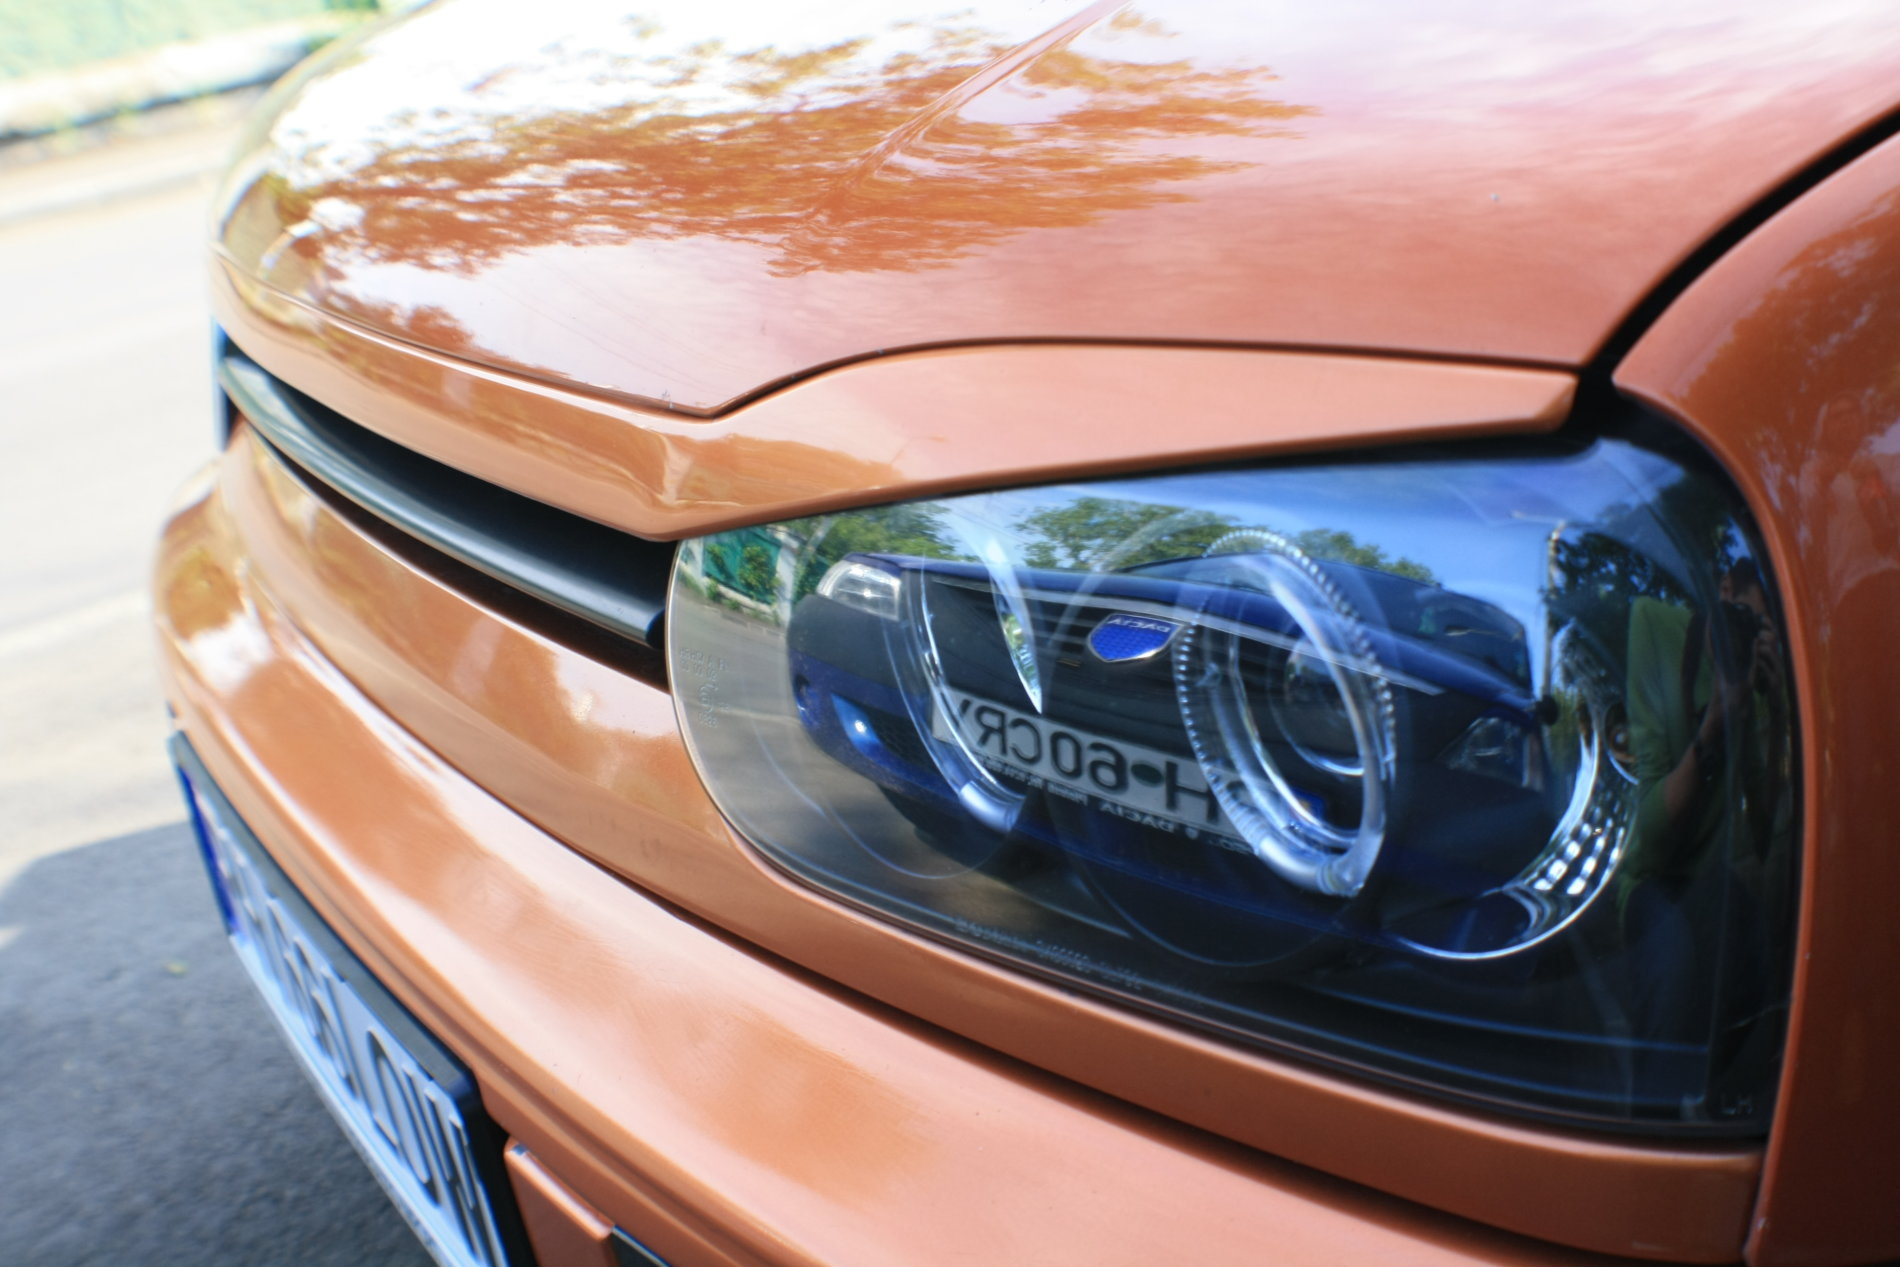 Golf MK3 GT by Bengy - Tuned Up Orange: Golf MK3 GT by Bengy